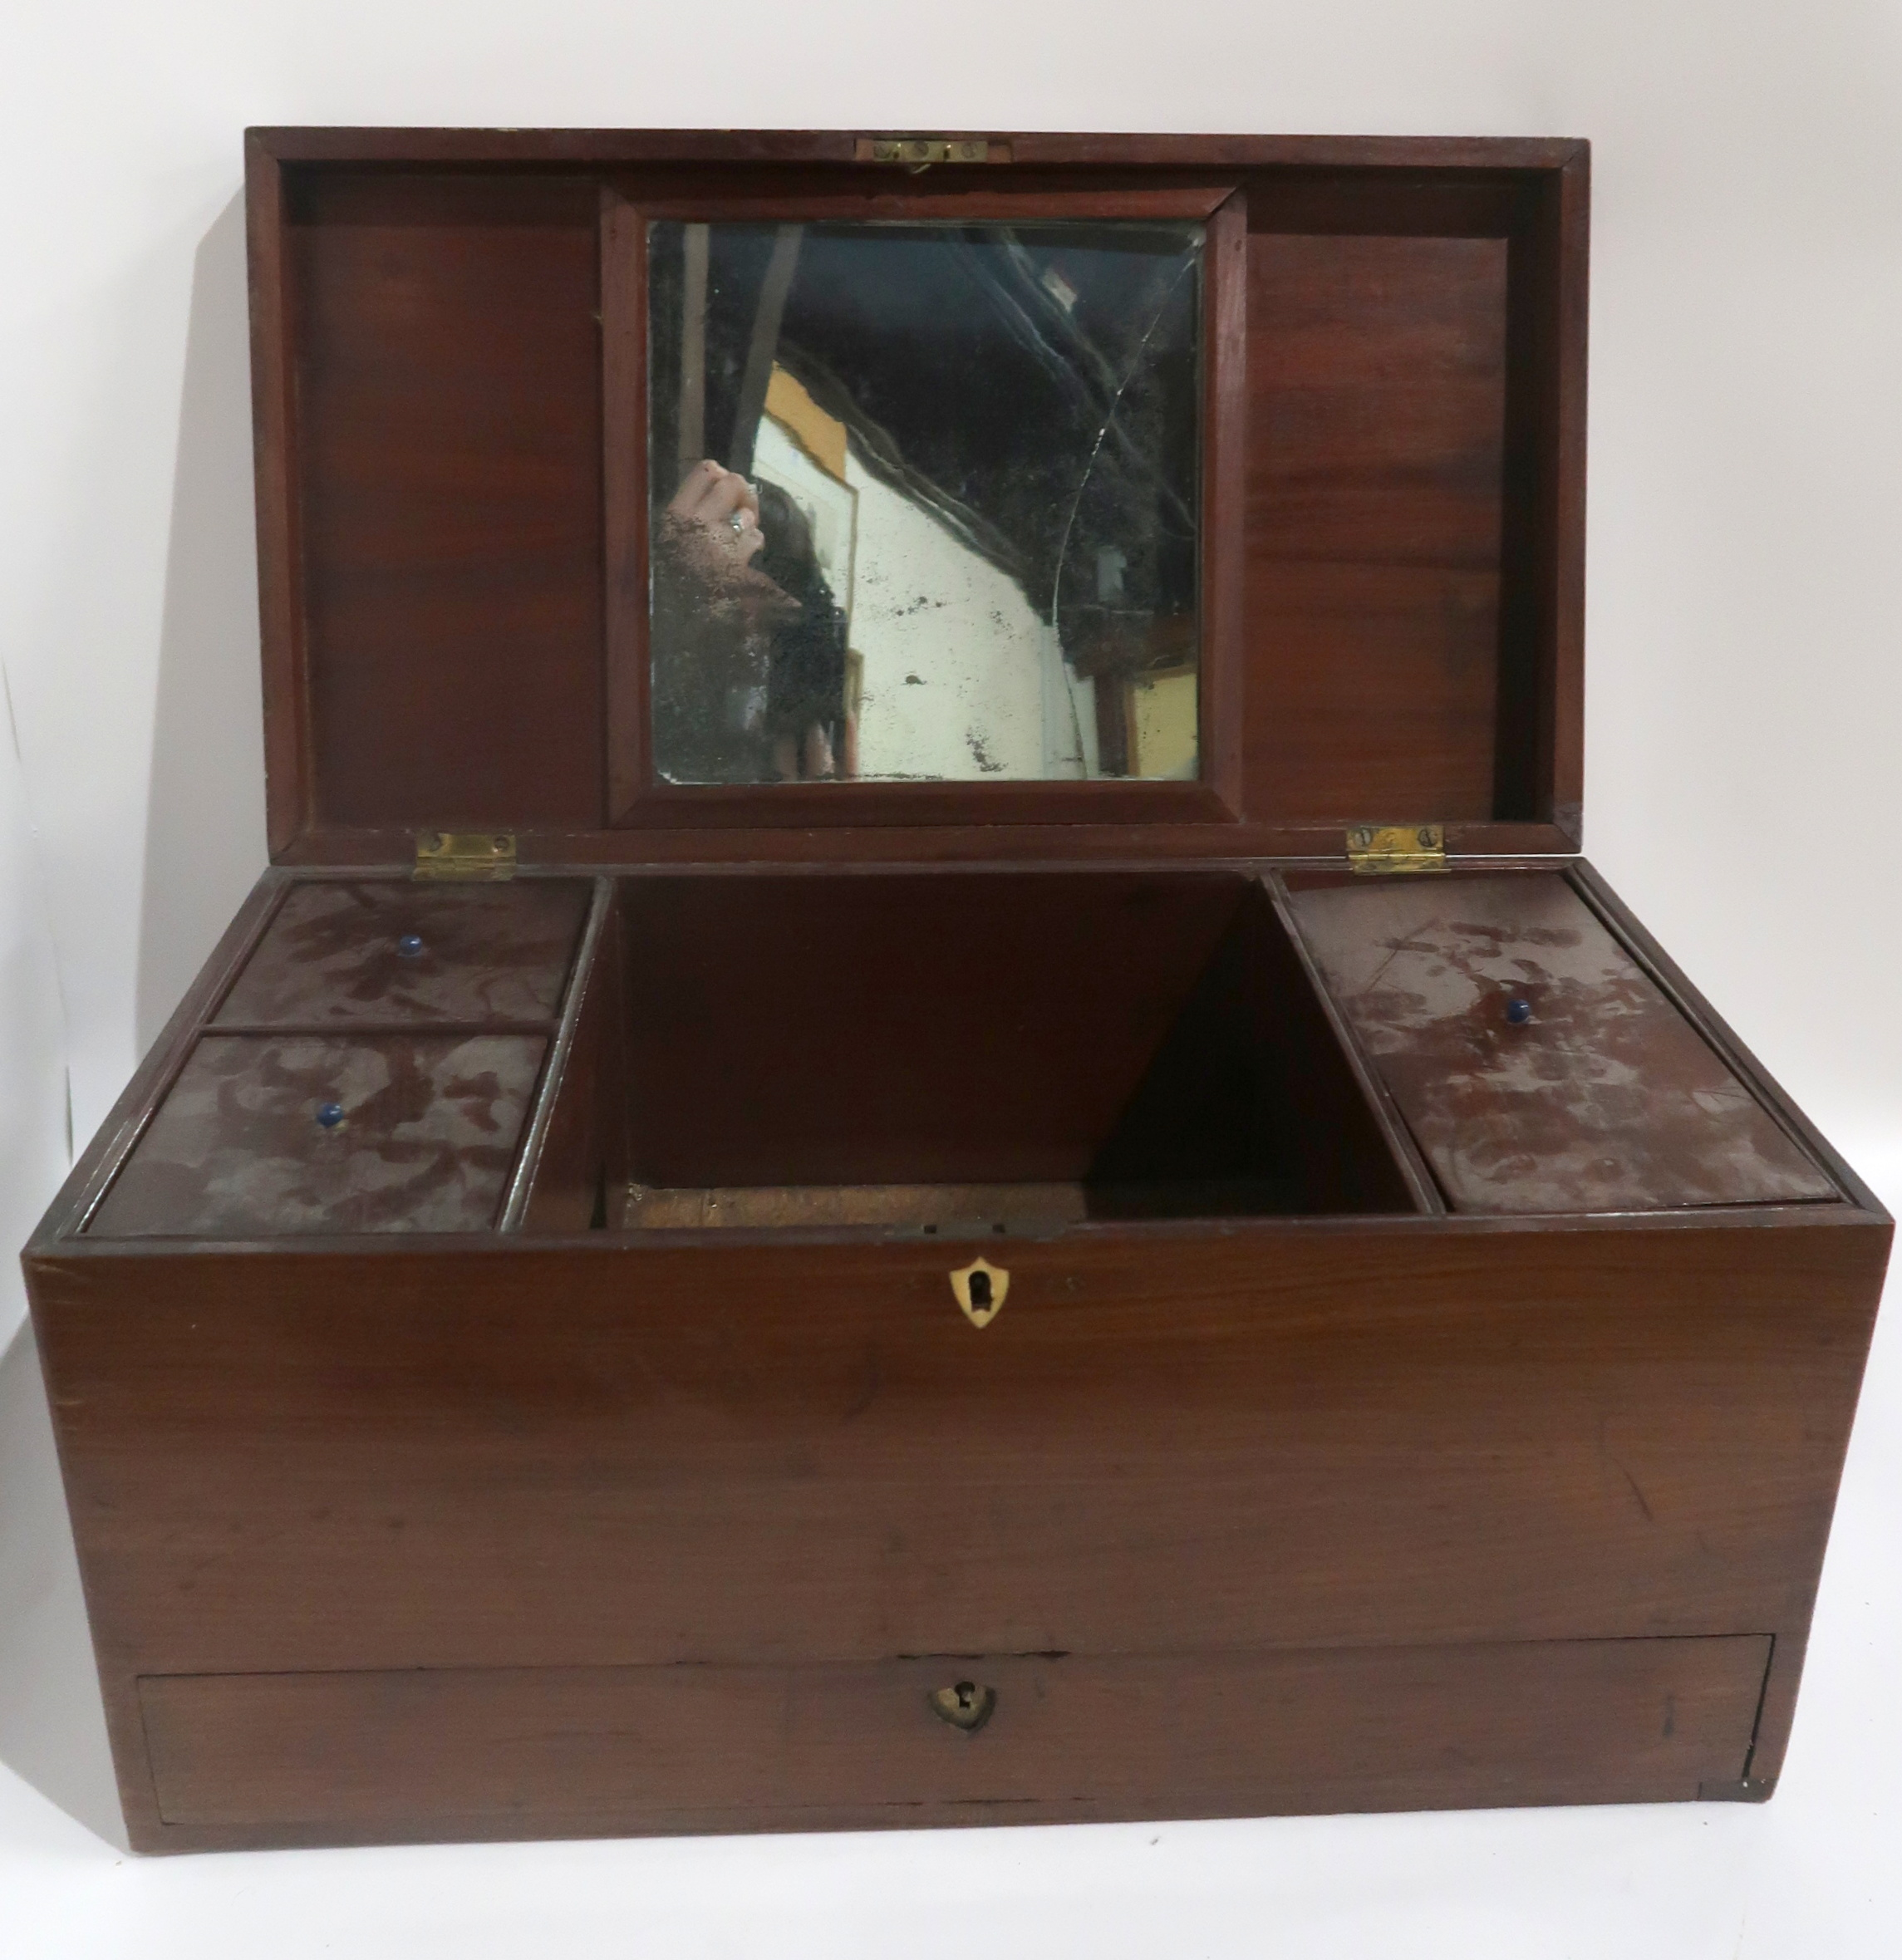 A GEORGIAN MAHOGANY JEWELLERY BOX Condition Report: Available upon request - Image 4 of 4